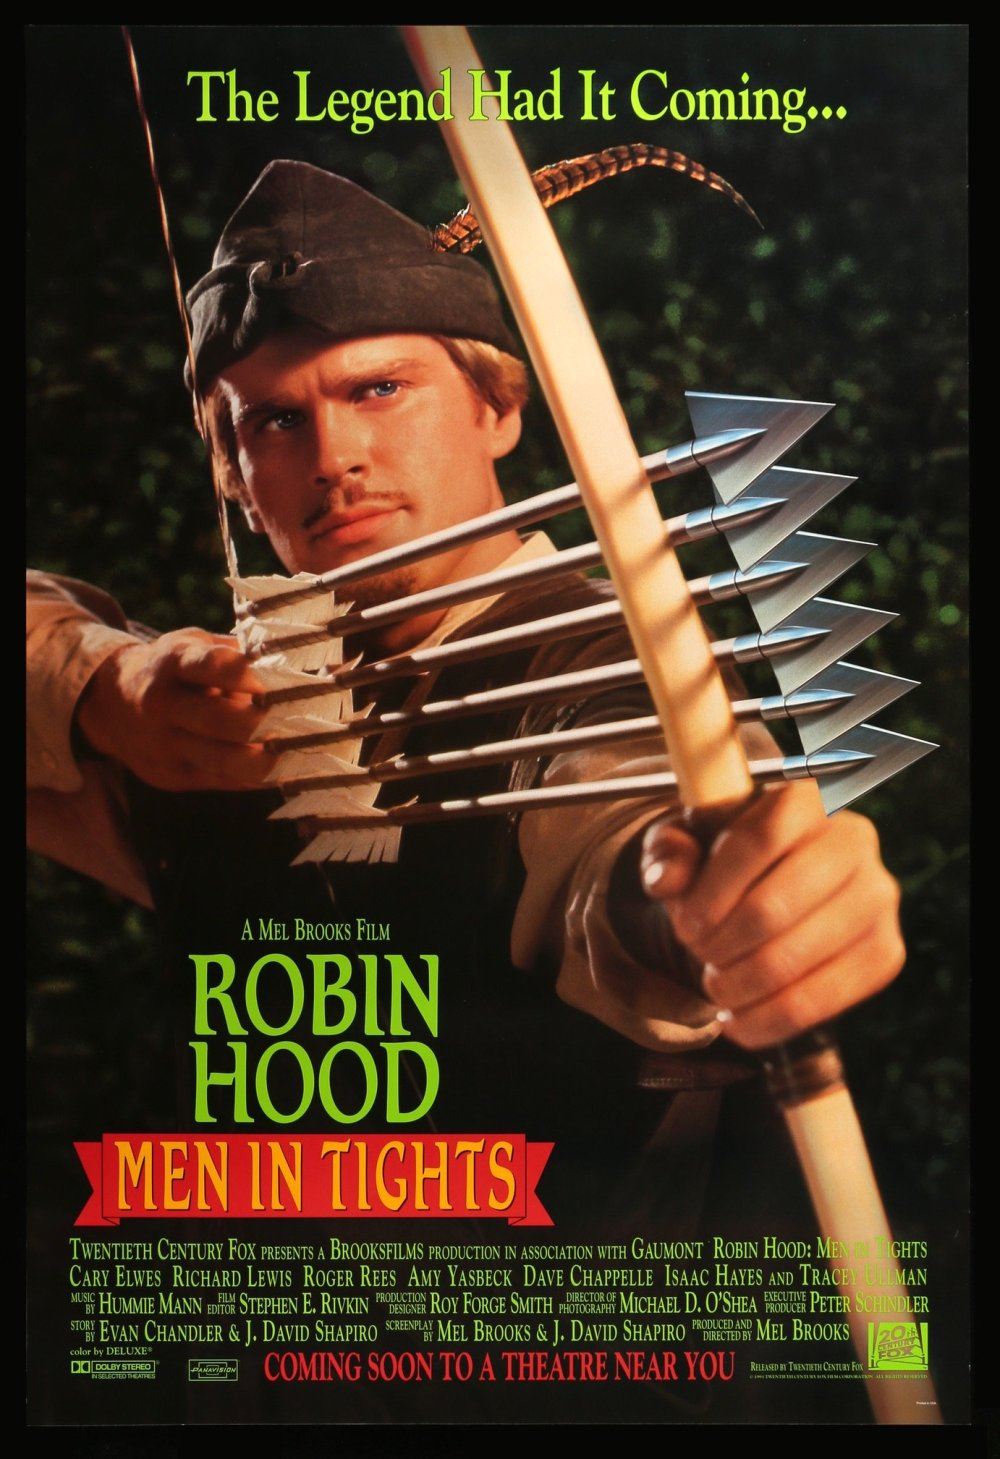 Robin_Hood_Men_in_Tights_1993_original_film_art_2000x